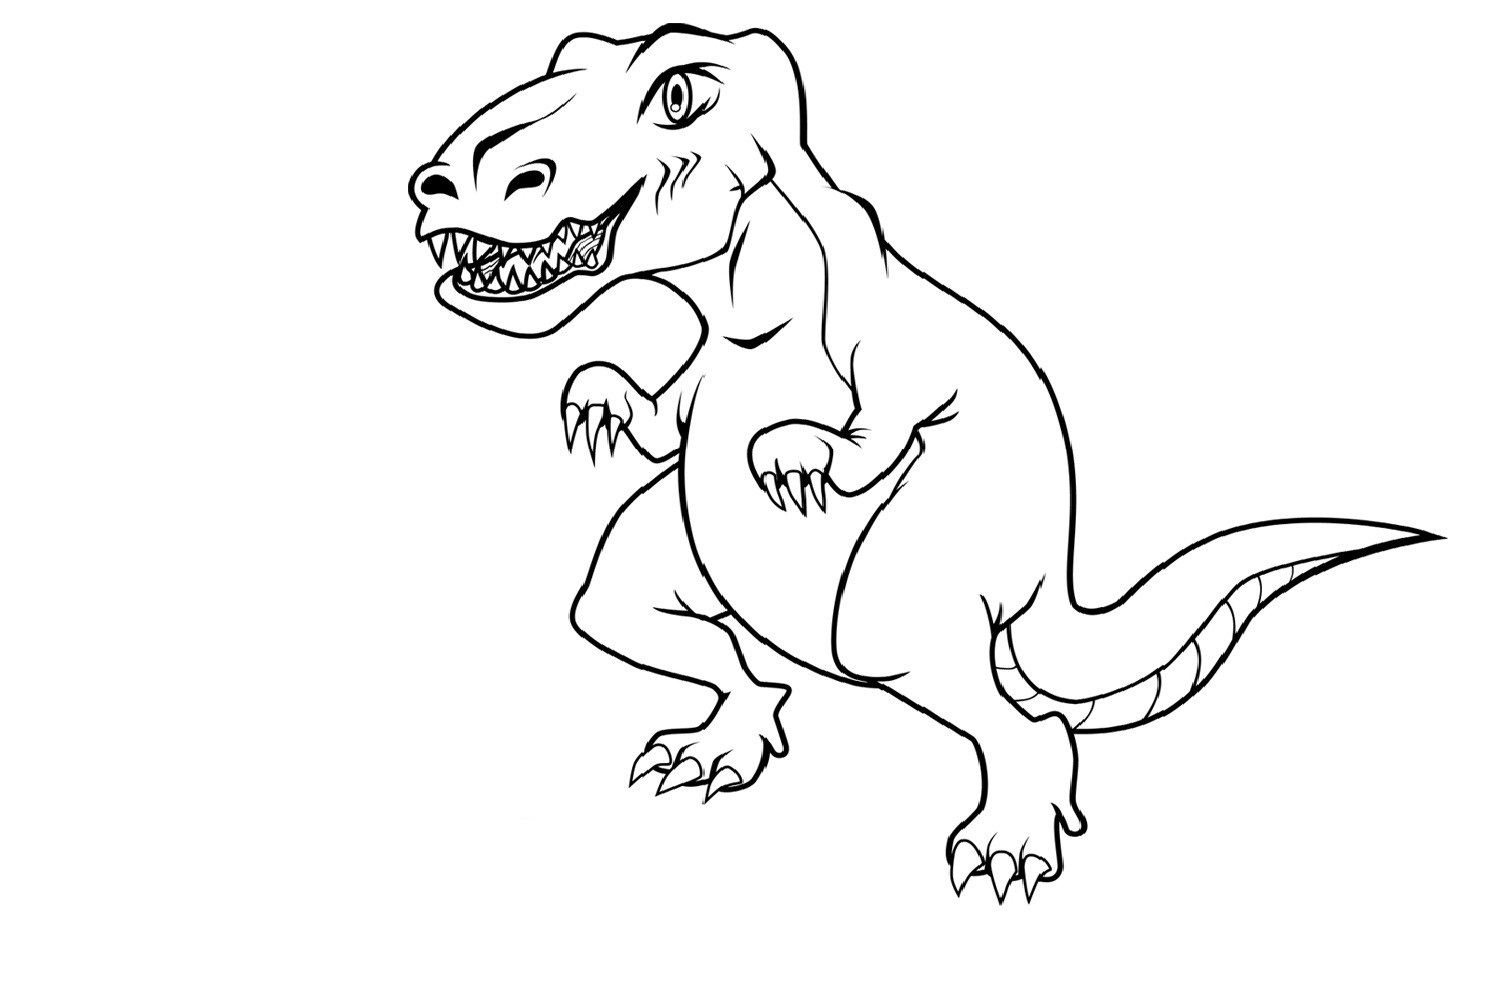 free printable dinosaur coloring pages - Printable Color Pages For Kids